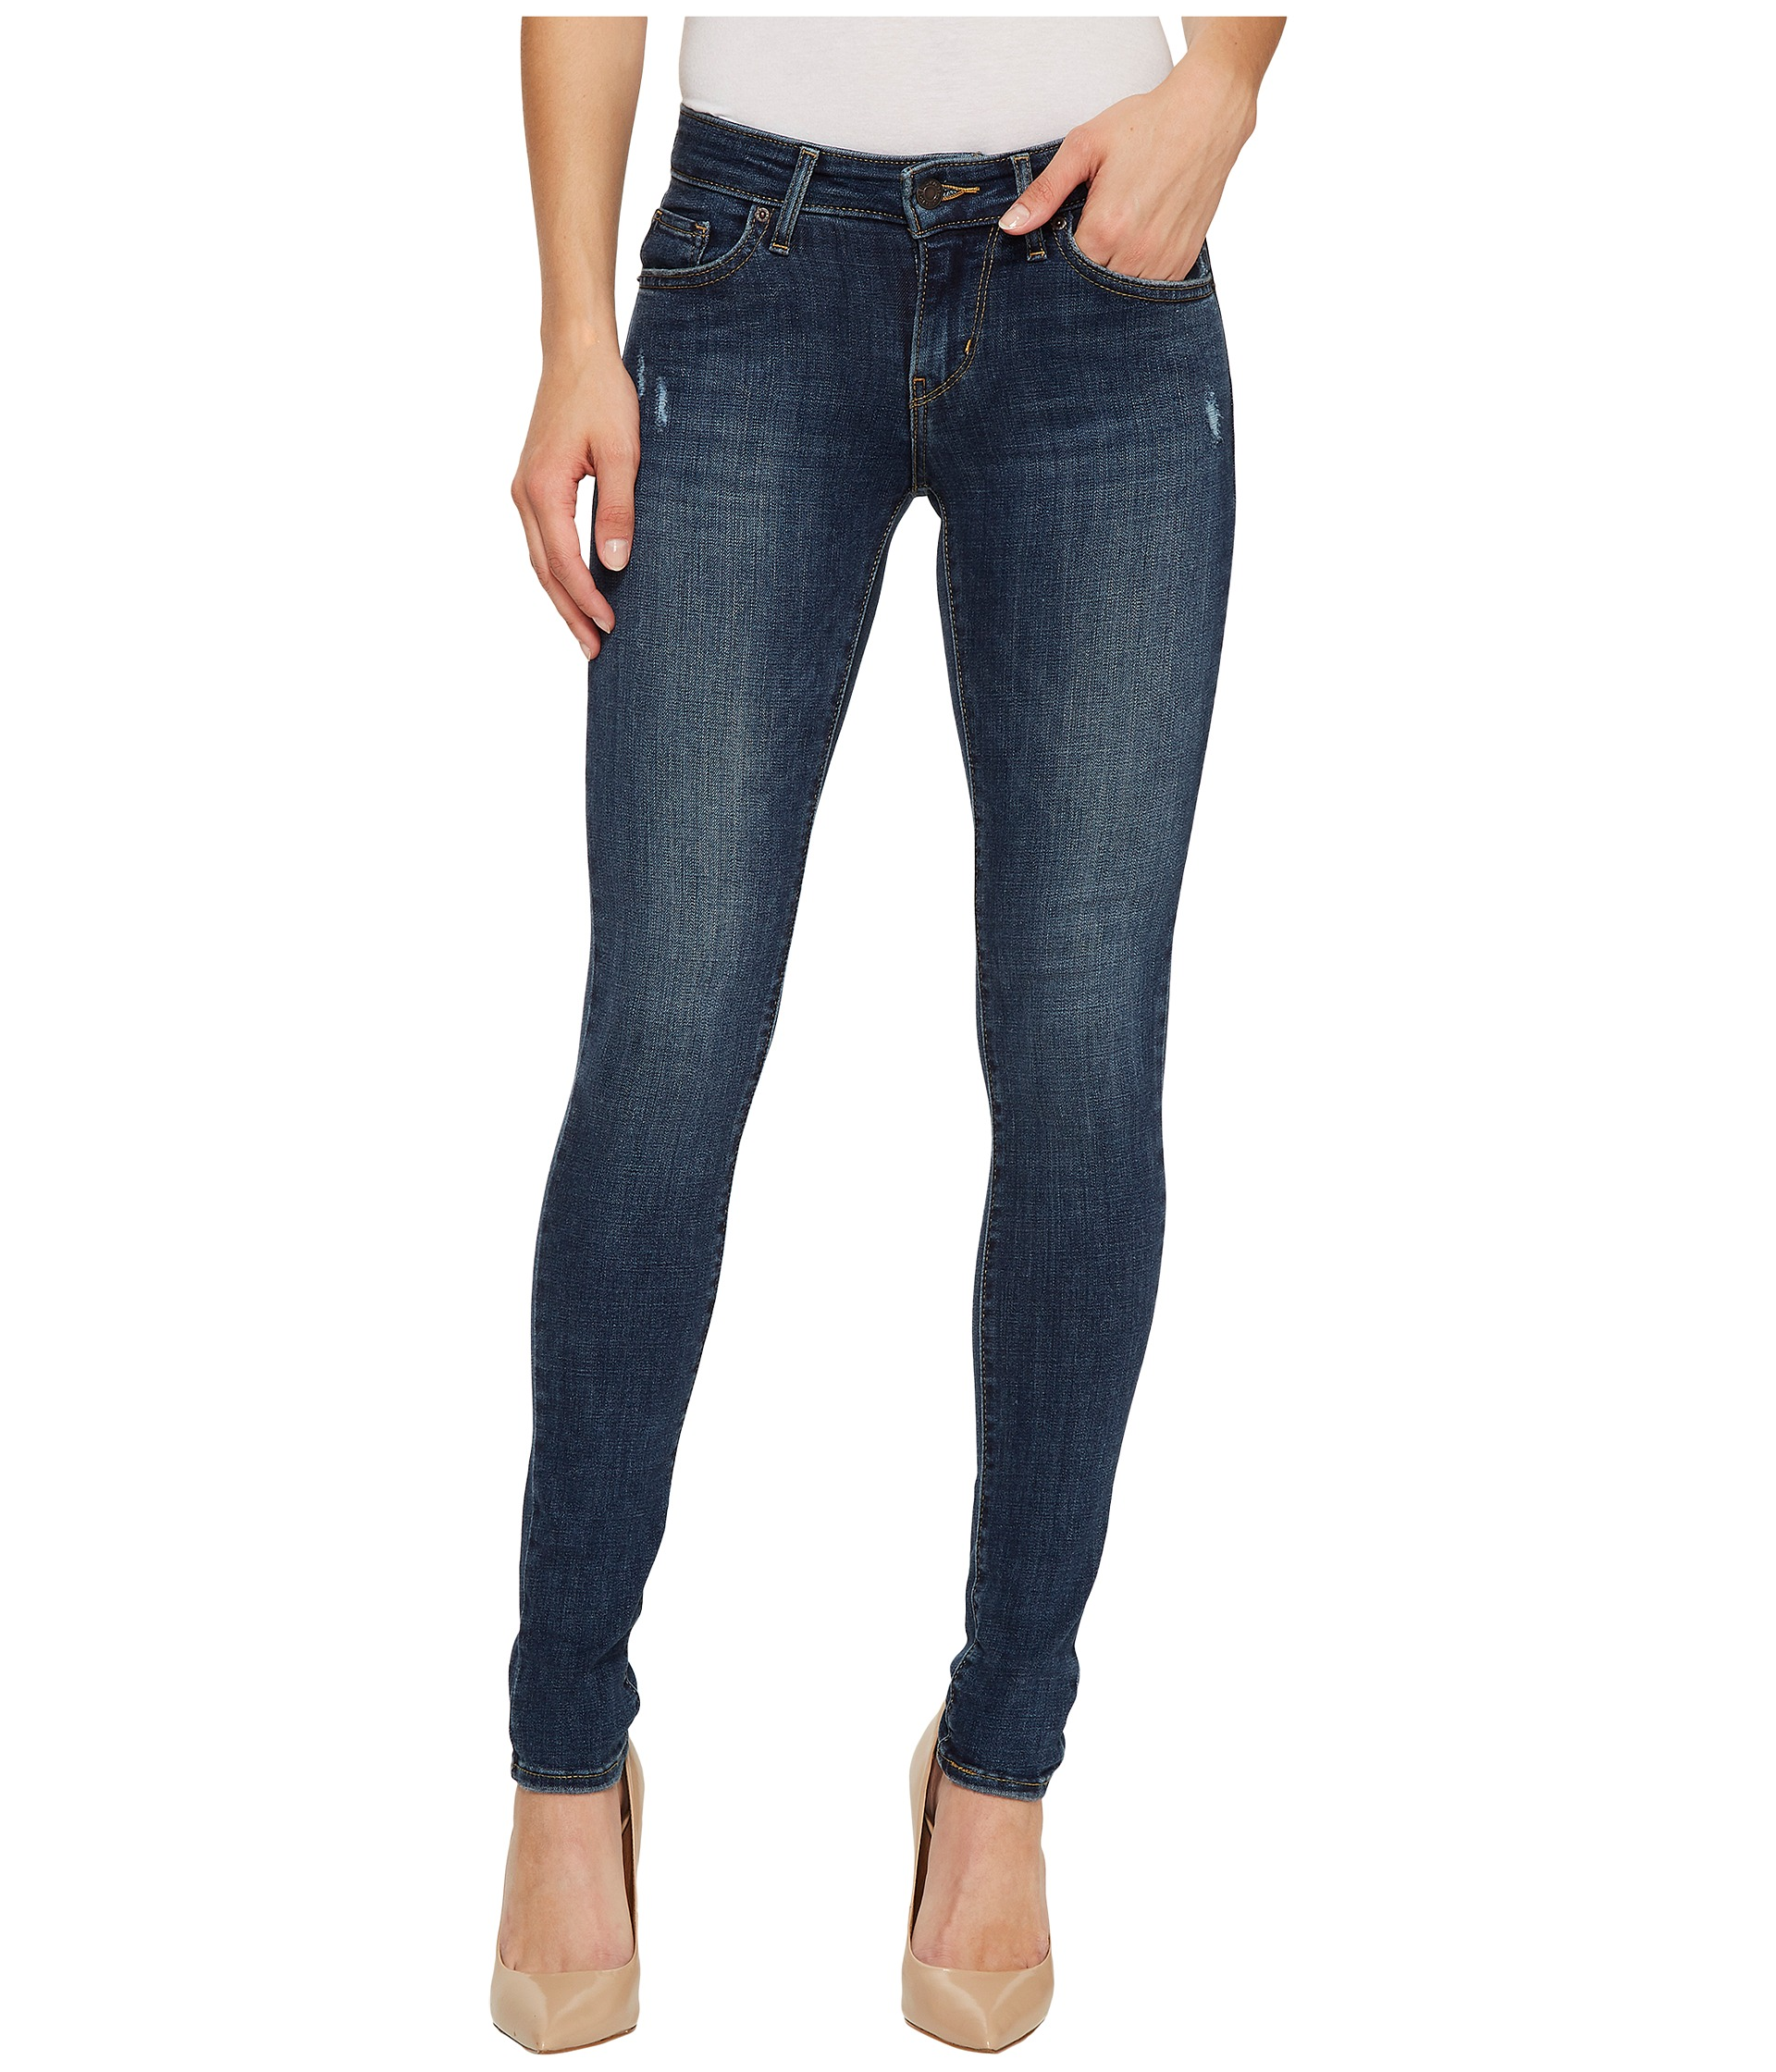 Zappos Womens Jeans